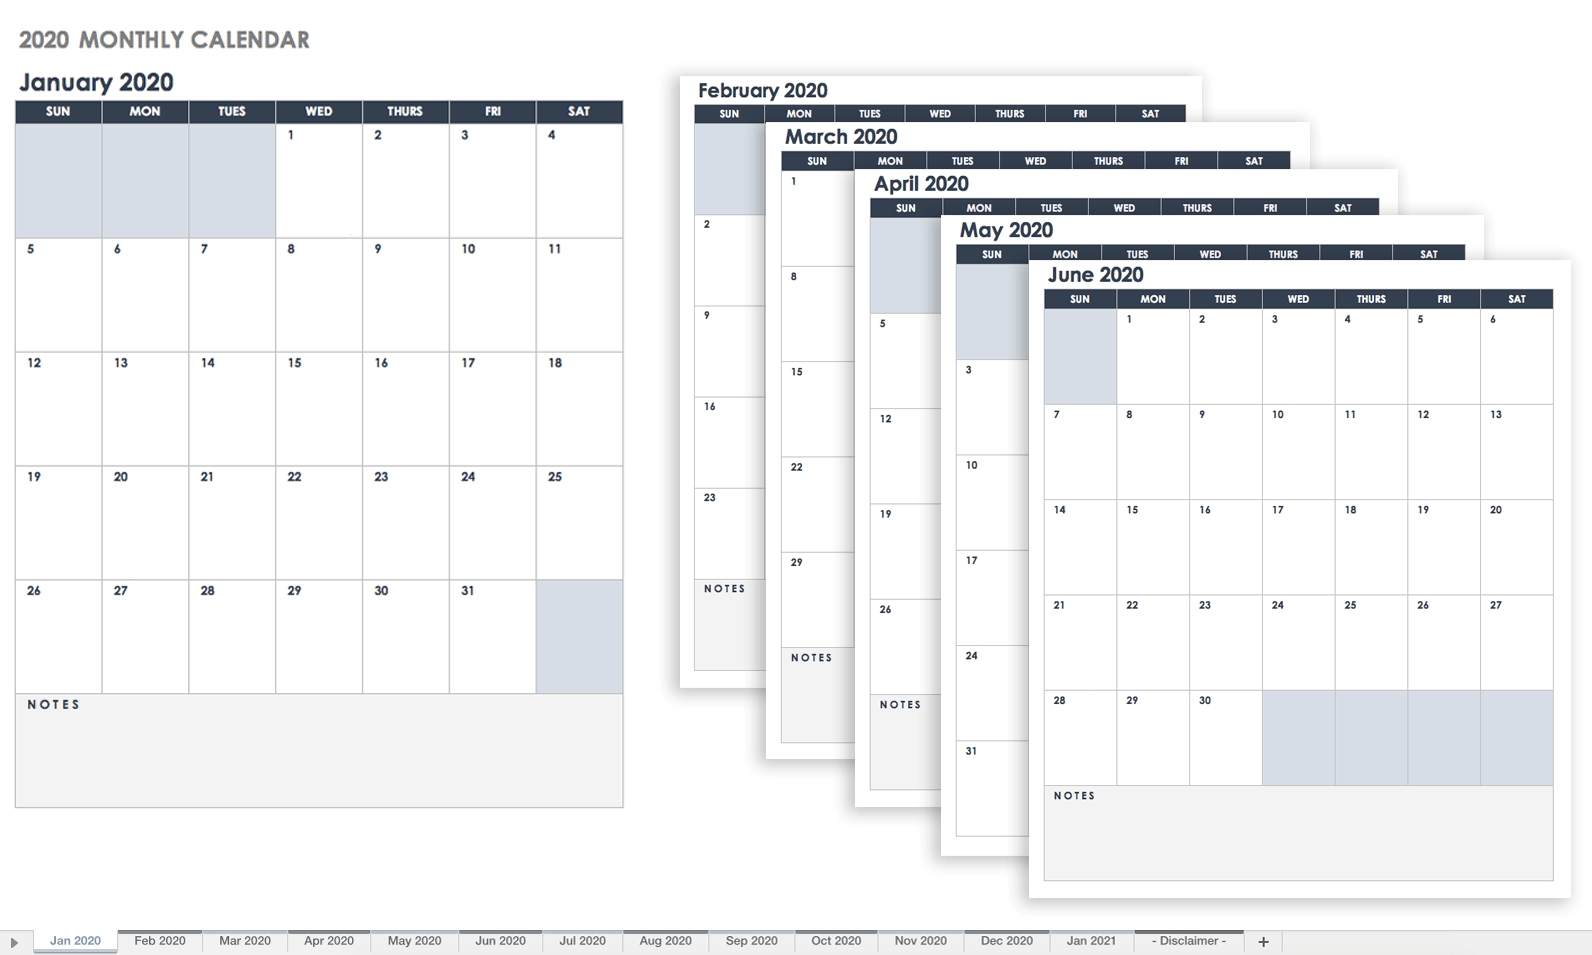 Free Google Calendar Templates | Smartsheet-School Monthly Calendar No Weekends